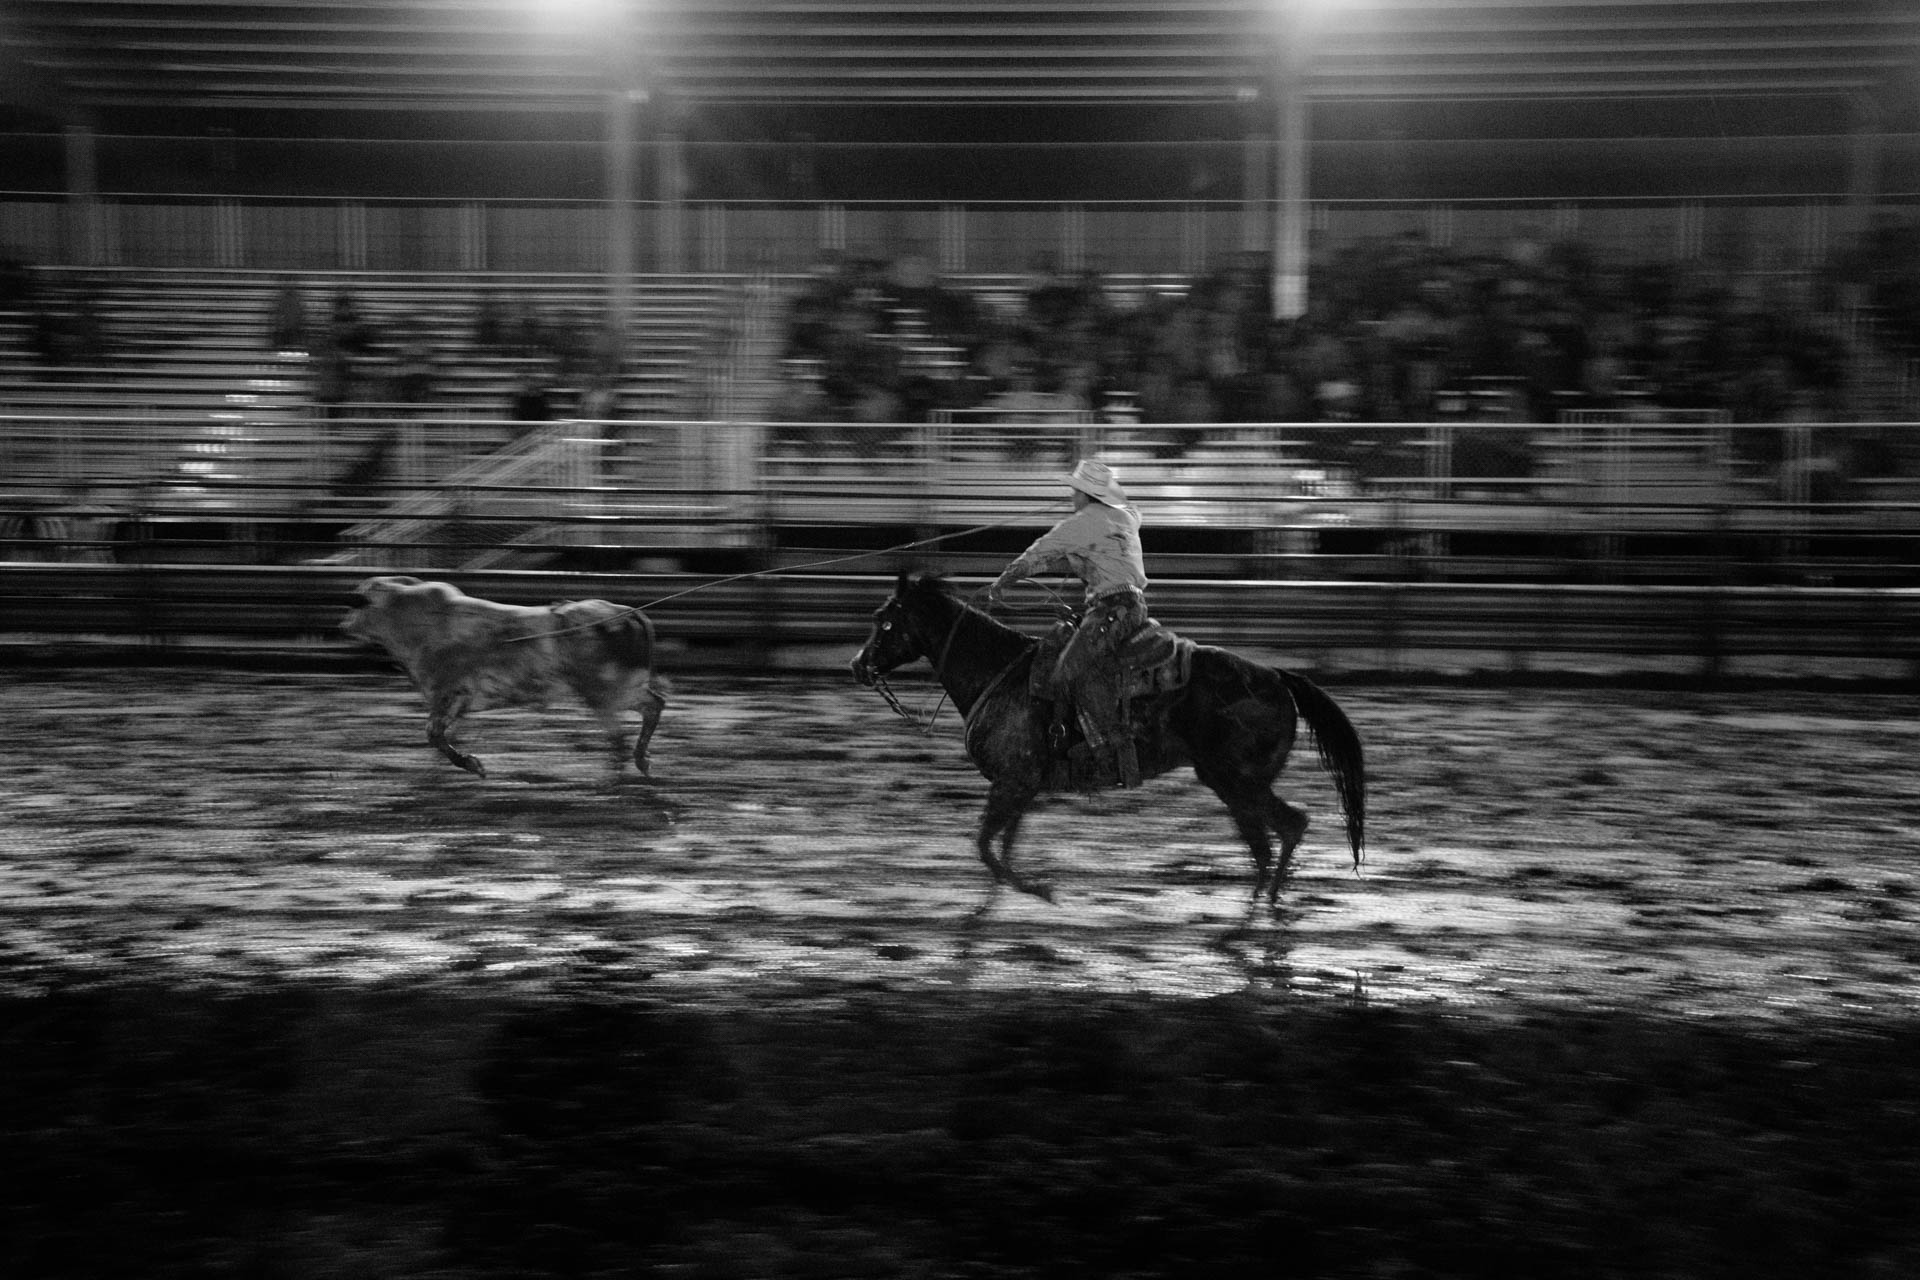 cowboy-lassos-running-bull-in-muddy-arena-rice-bull-riding-black-river-falls-wi-a5400